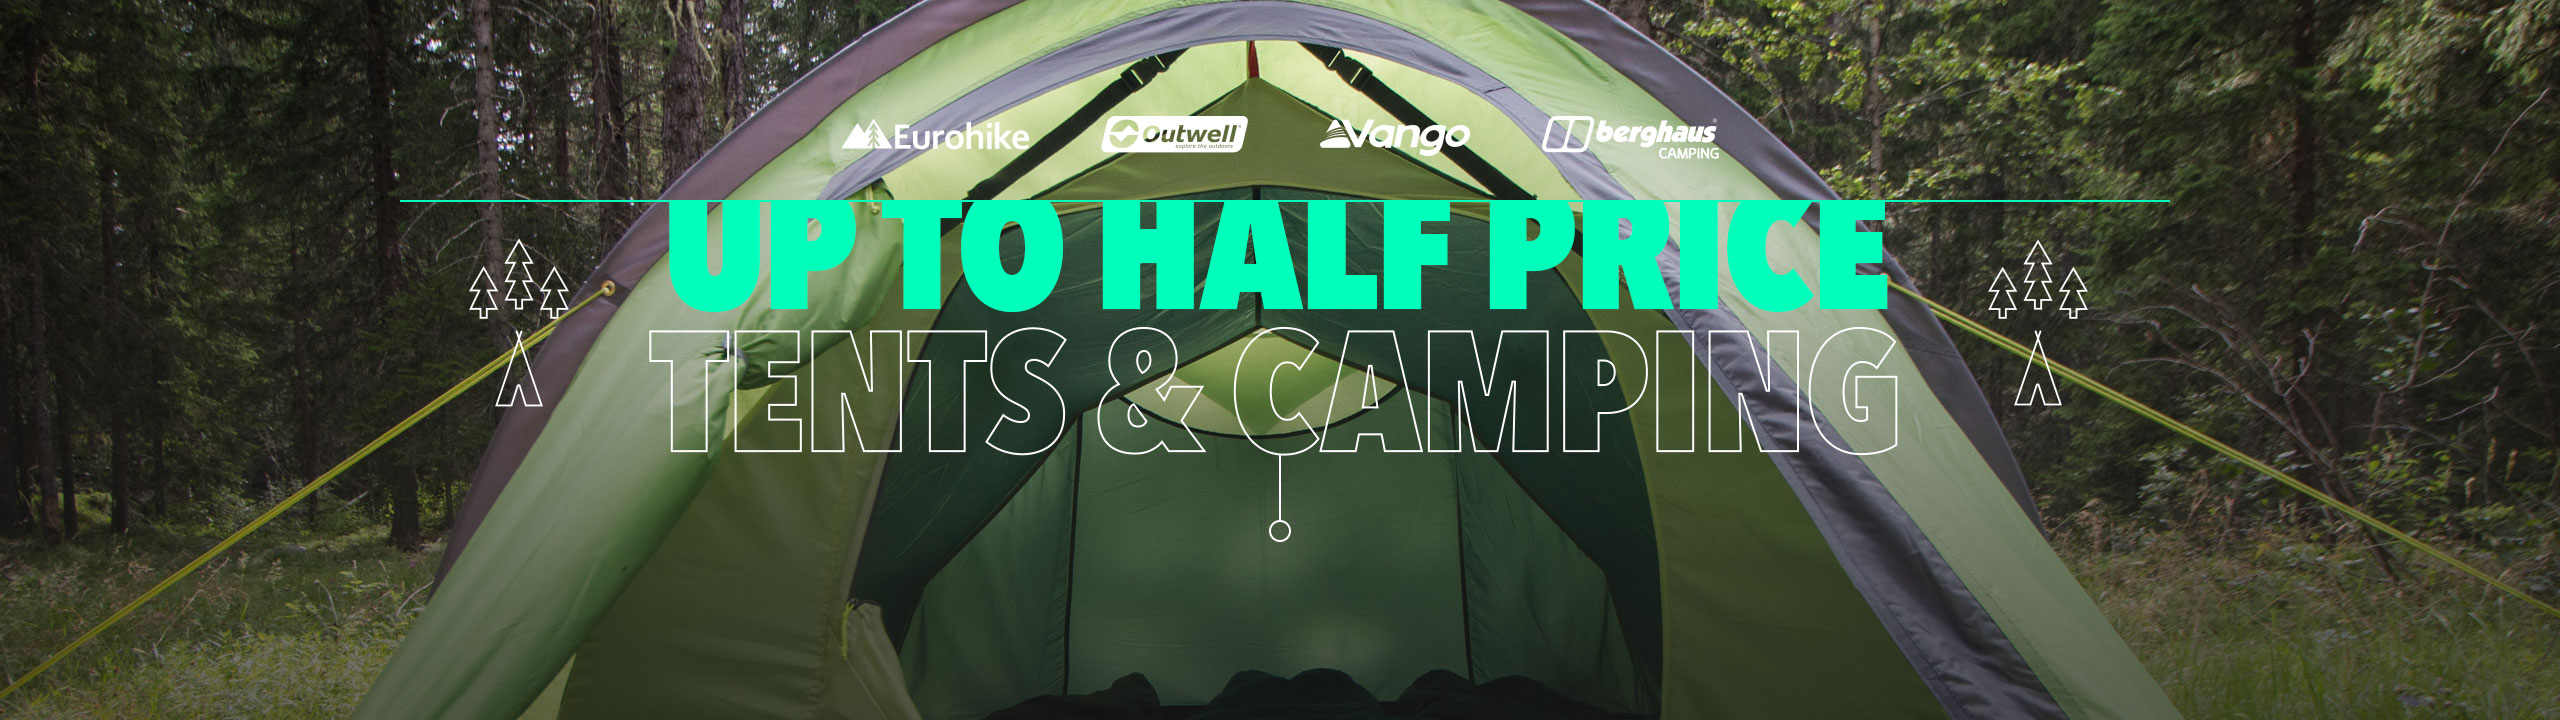 Up To Half Price Tents & Camping